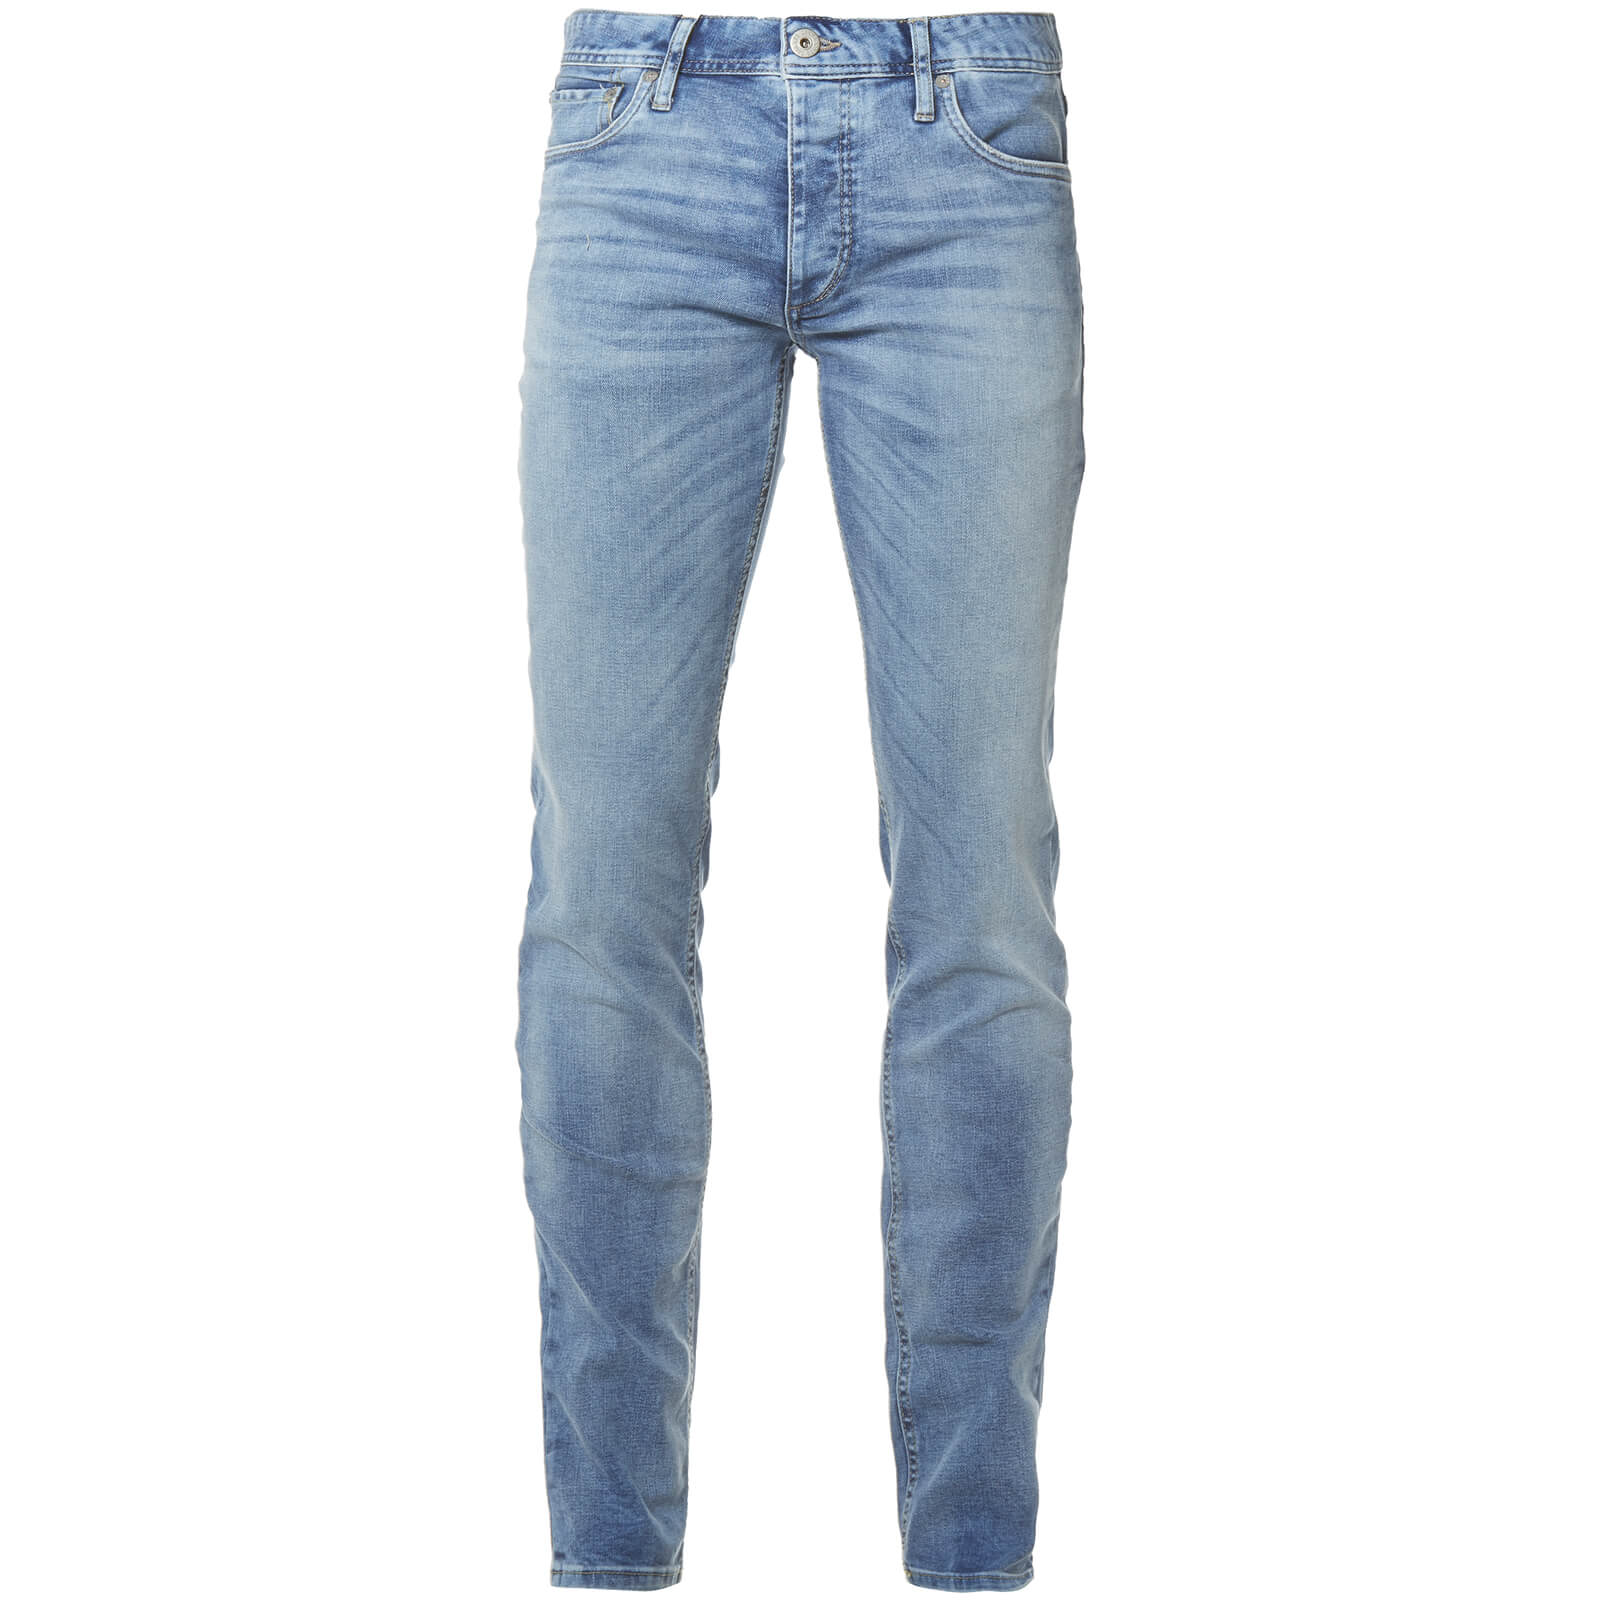 Jean Slim Homme 722 Jack & Jones Originals Tim - Bleu Jean